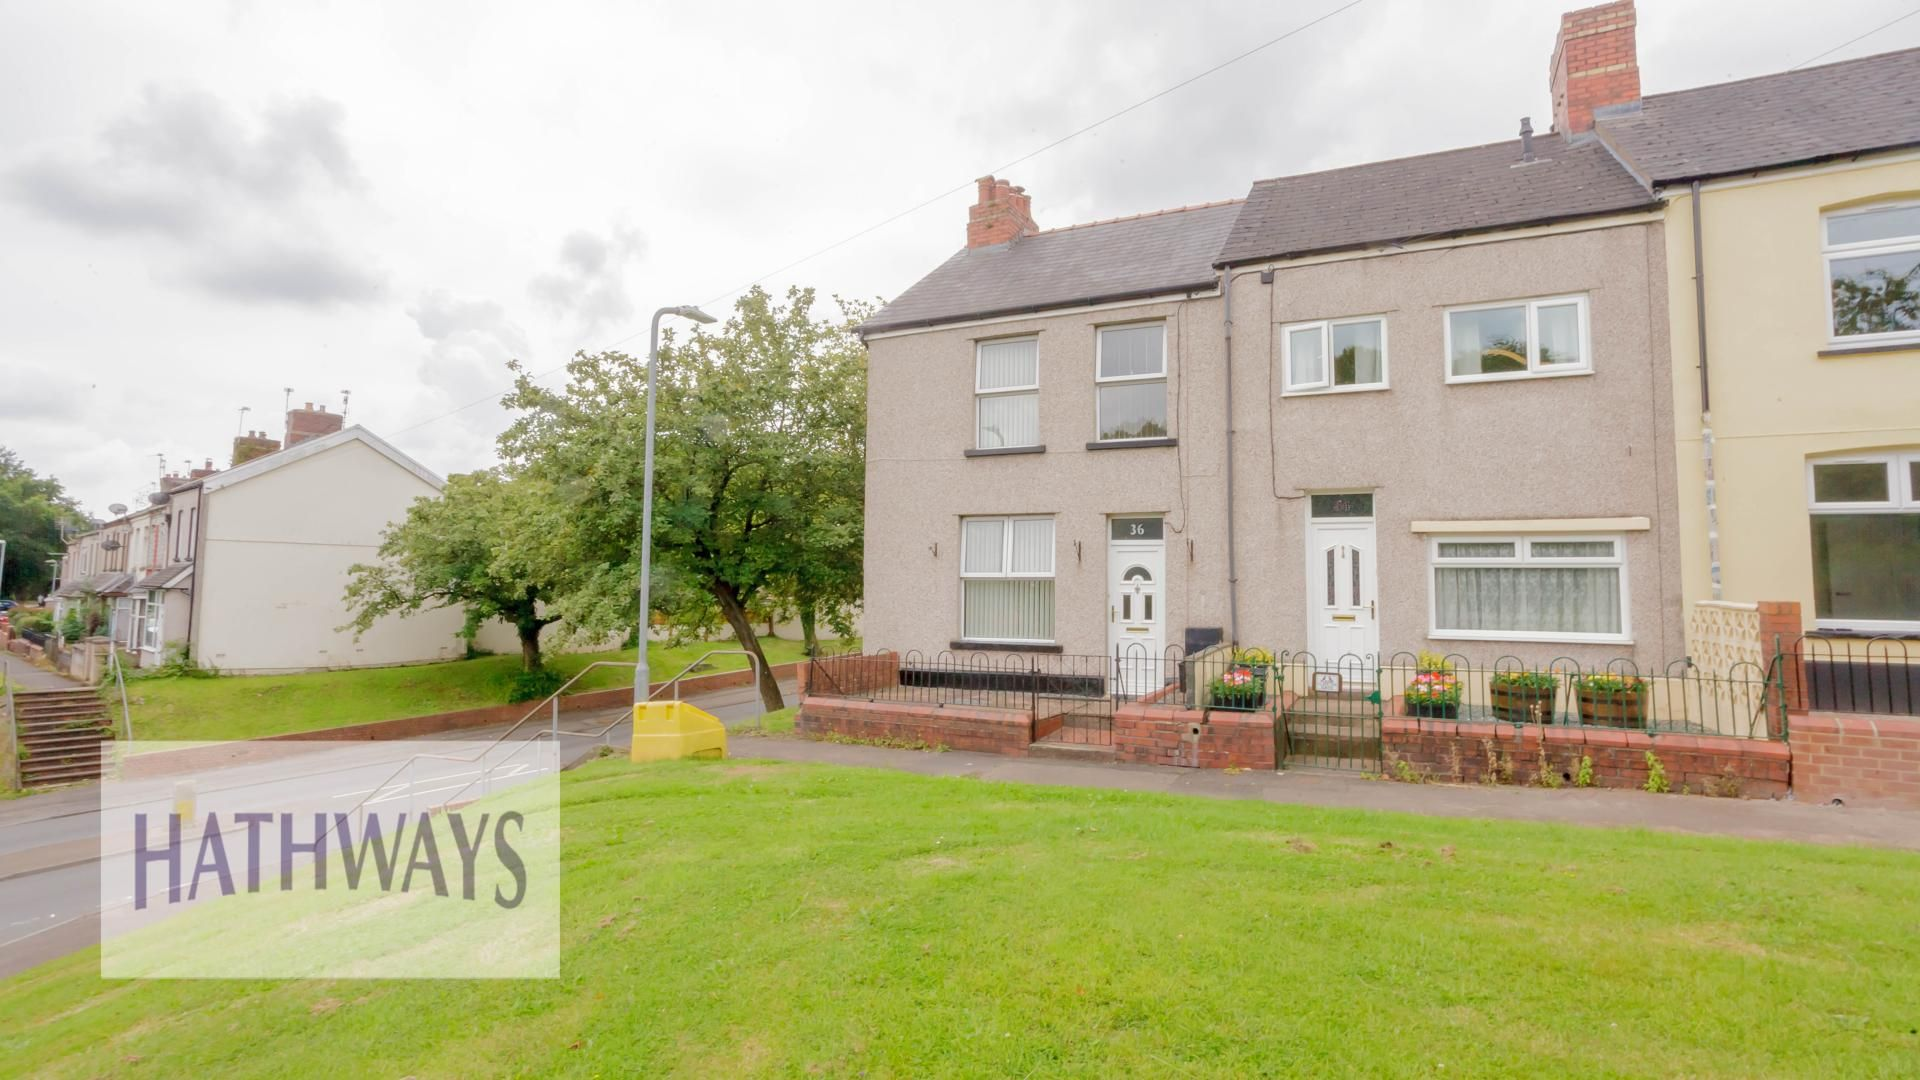 2 bed house for sale in Llantarnam Close, NP44